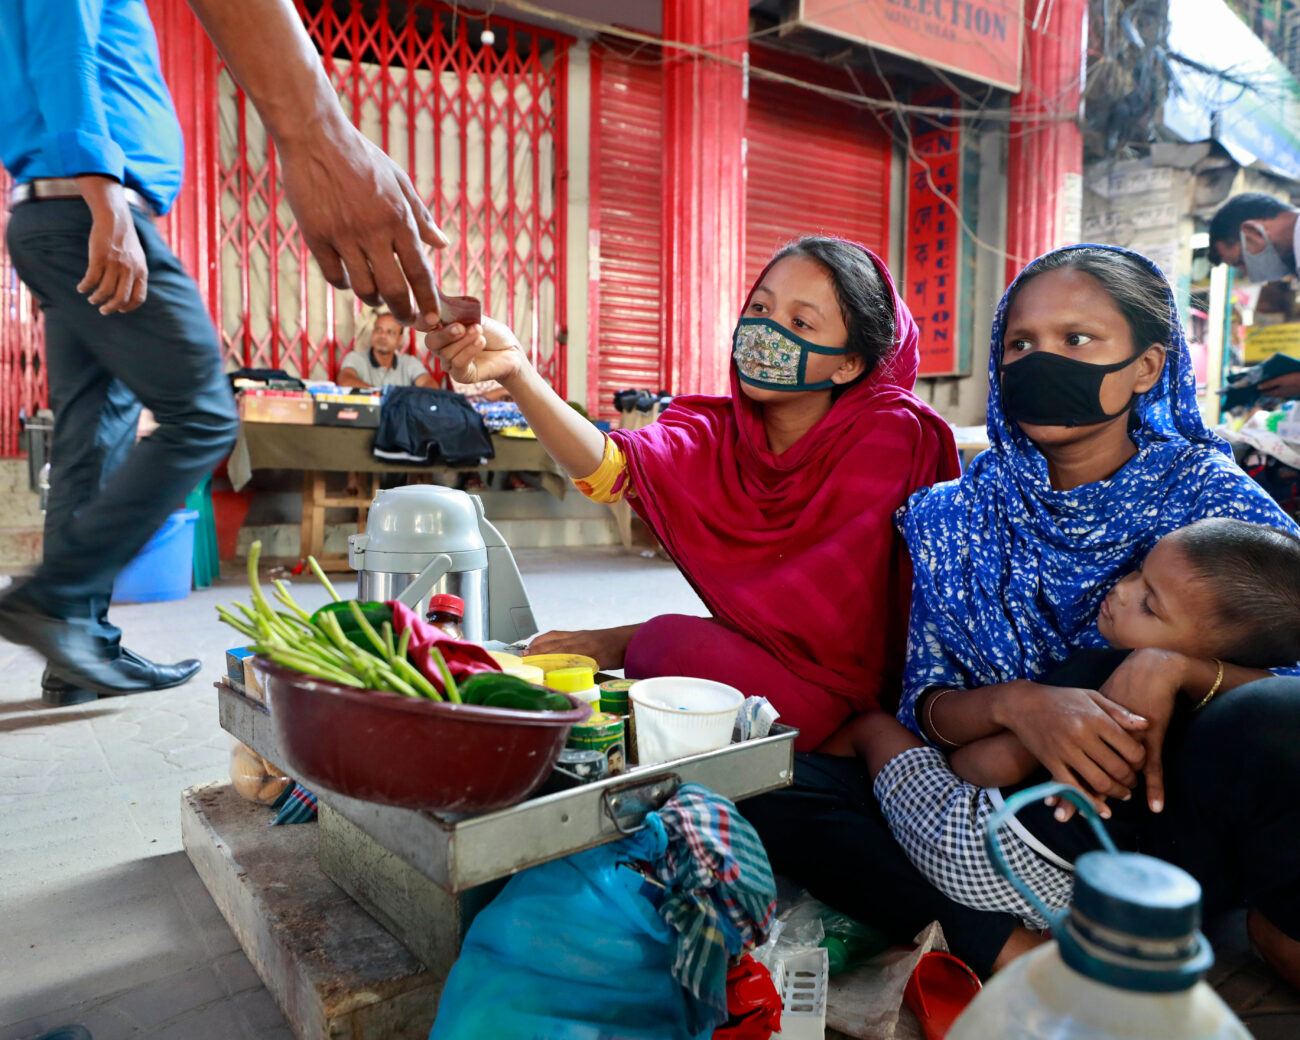 Women in Bangladesh working while caring for their children